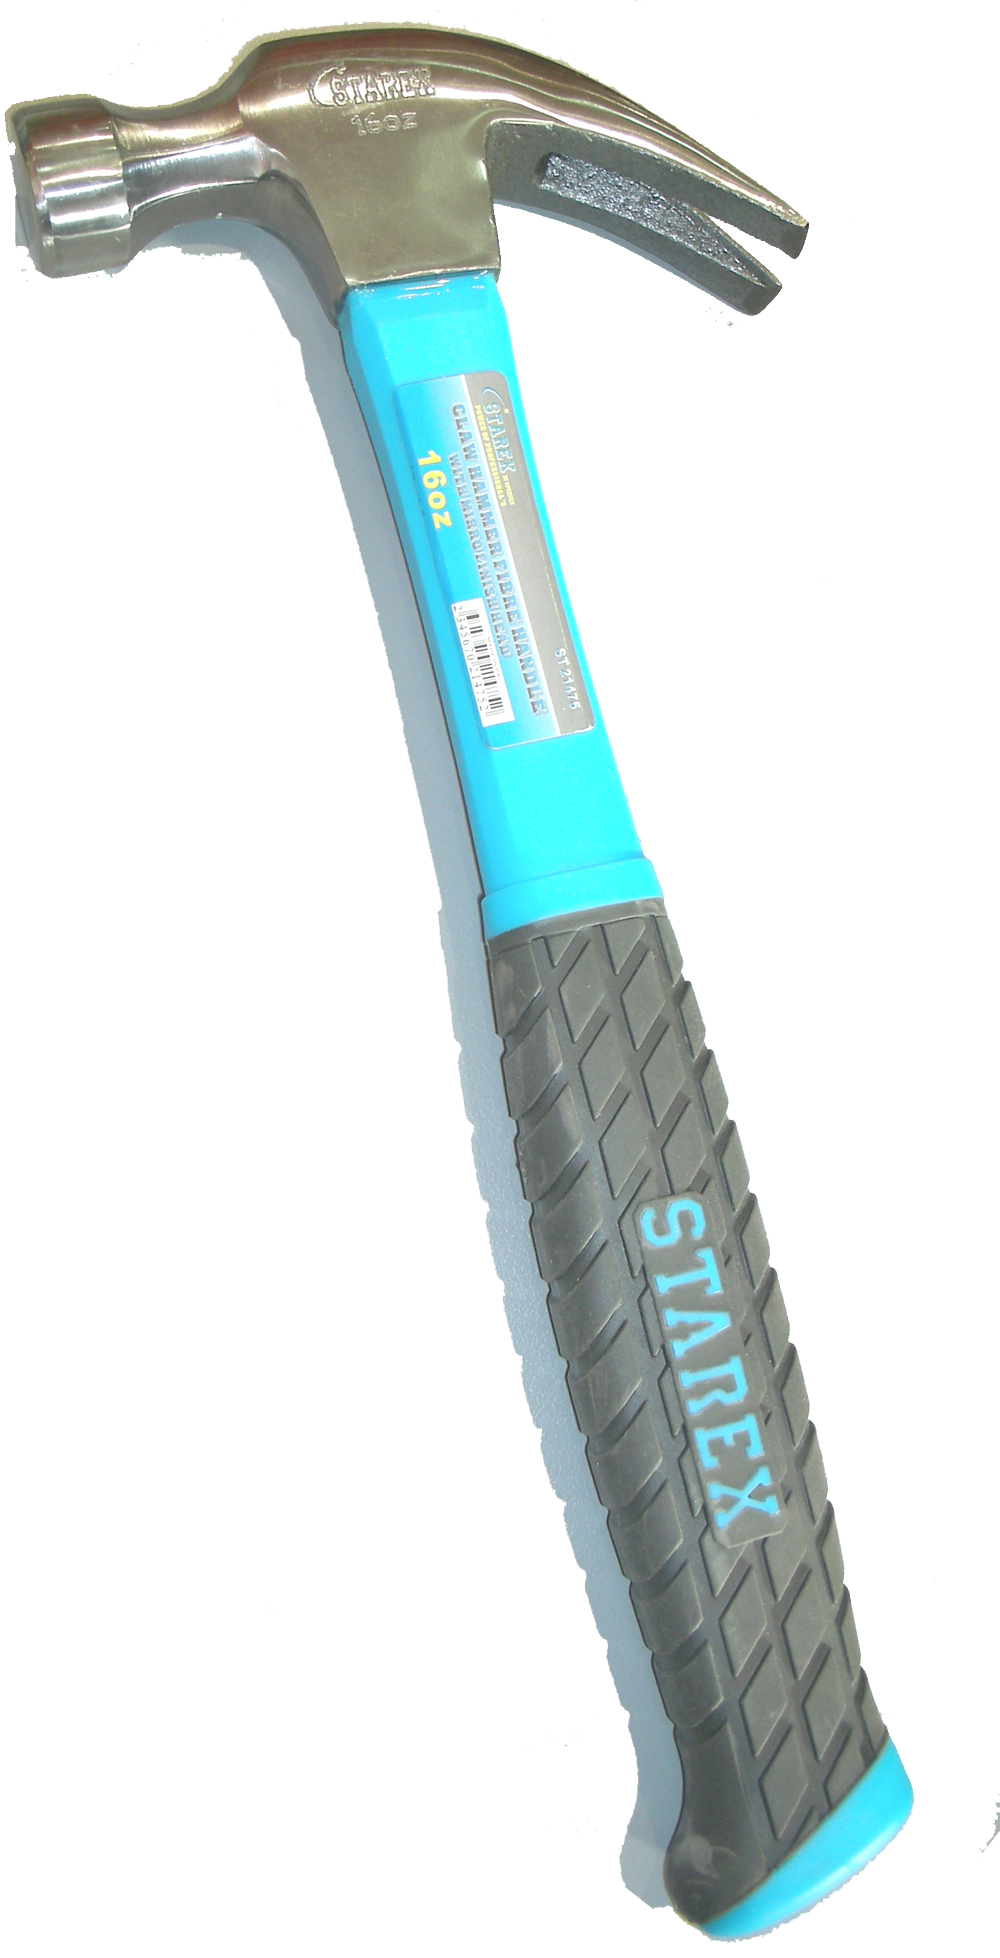 Hammer claw 16oz fibre handle with magnet soft rubber grey/blue grip starex brand